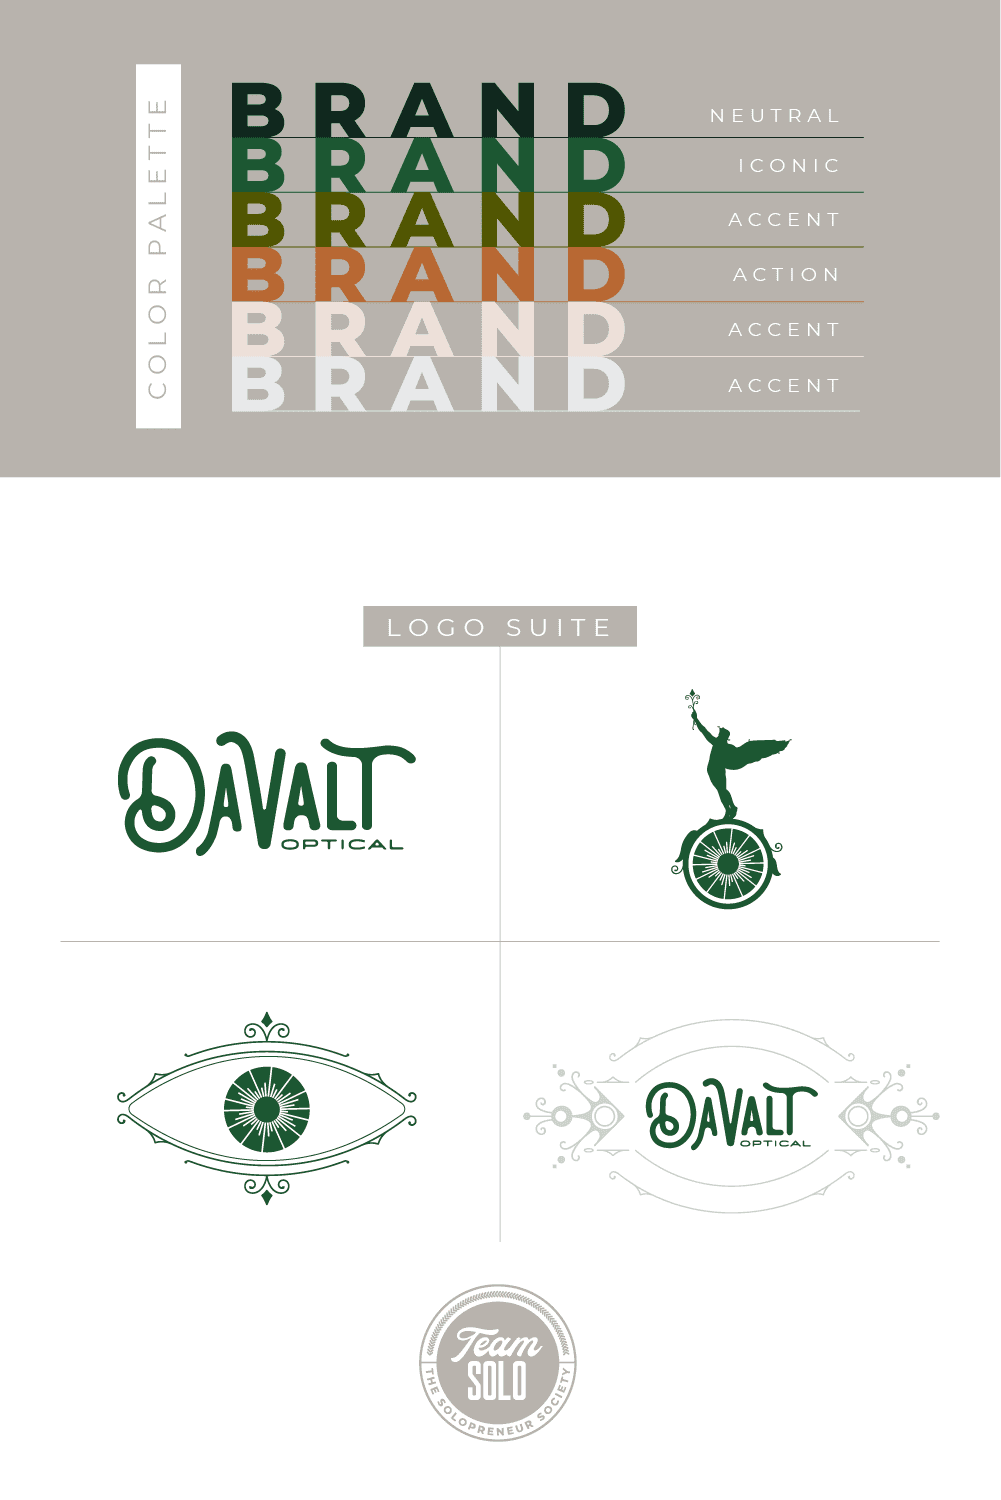 Davalt Optical Brand Identity Design